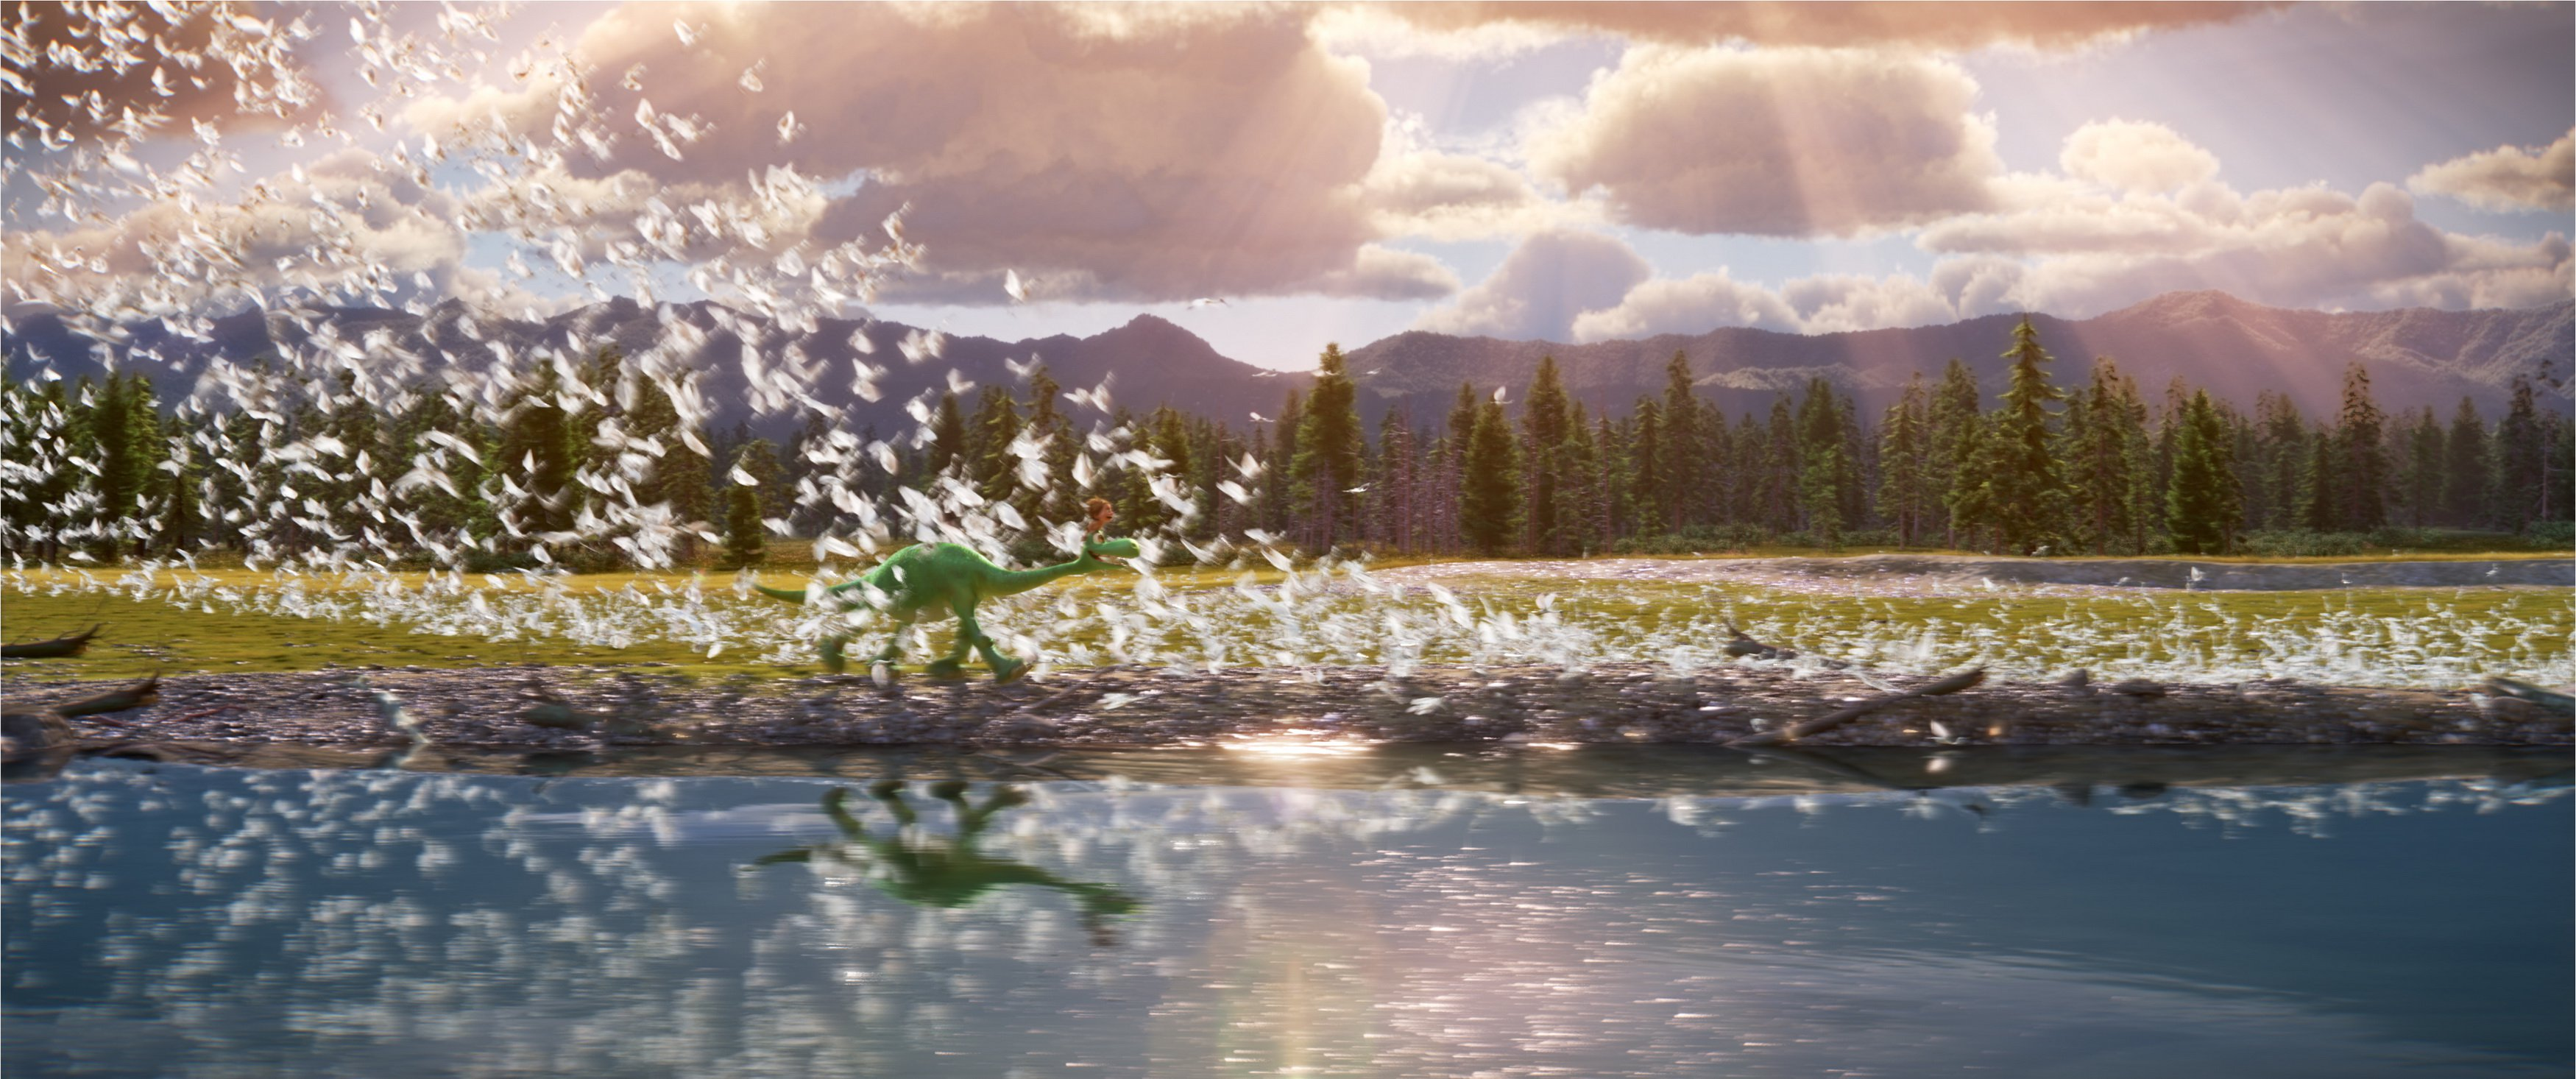 Good Dinosaur Interviews - Image 2